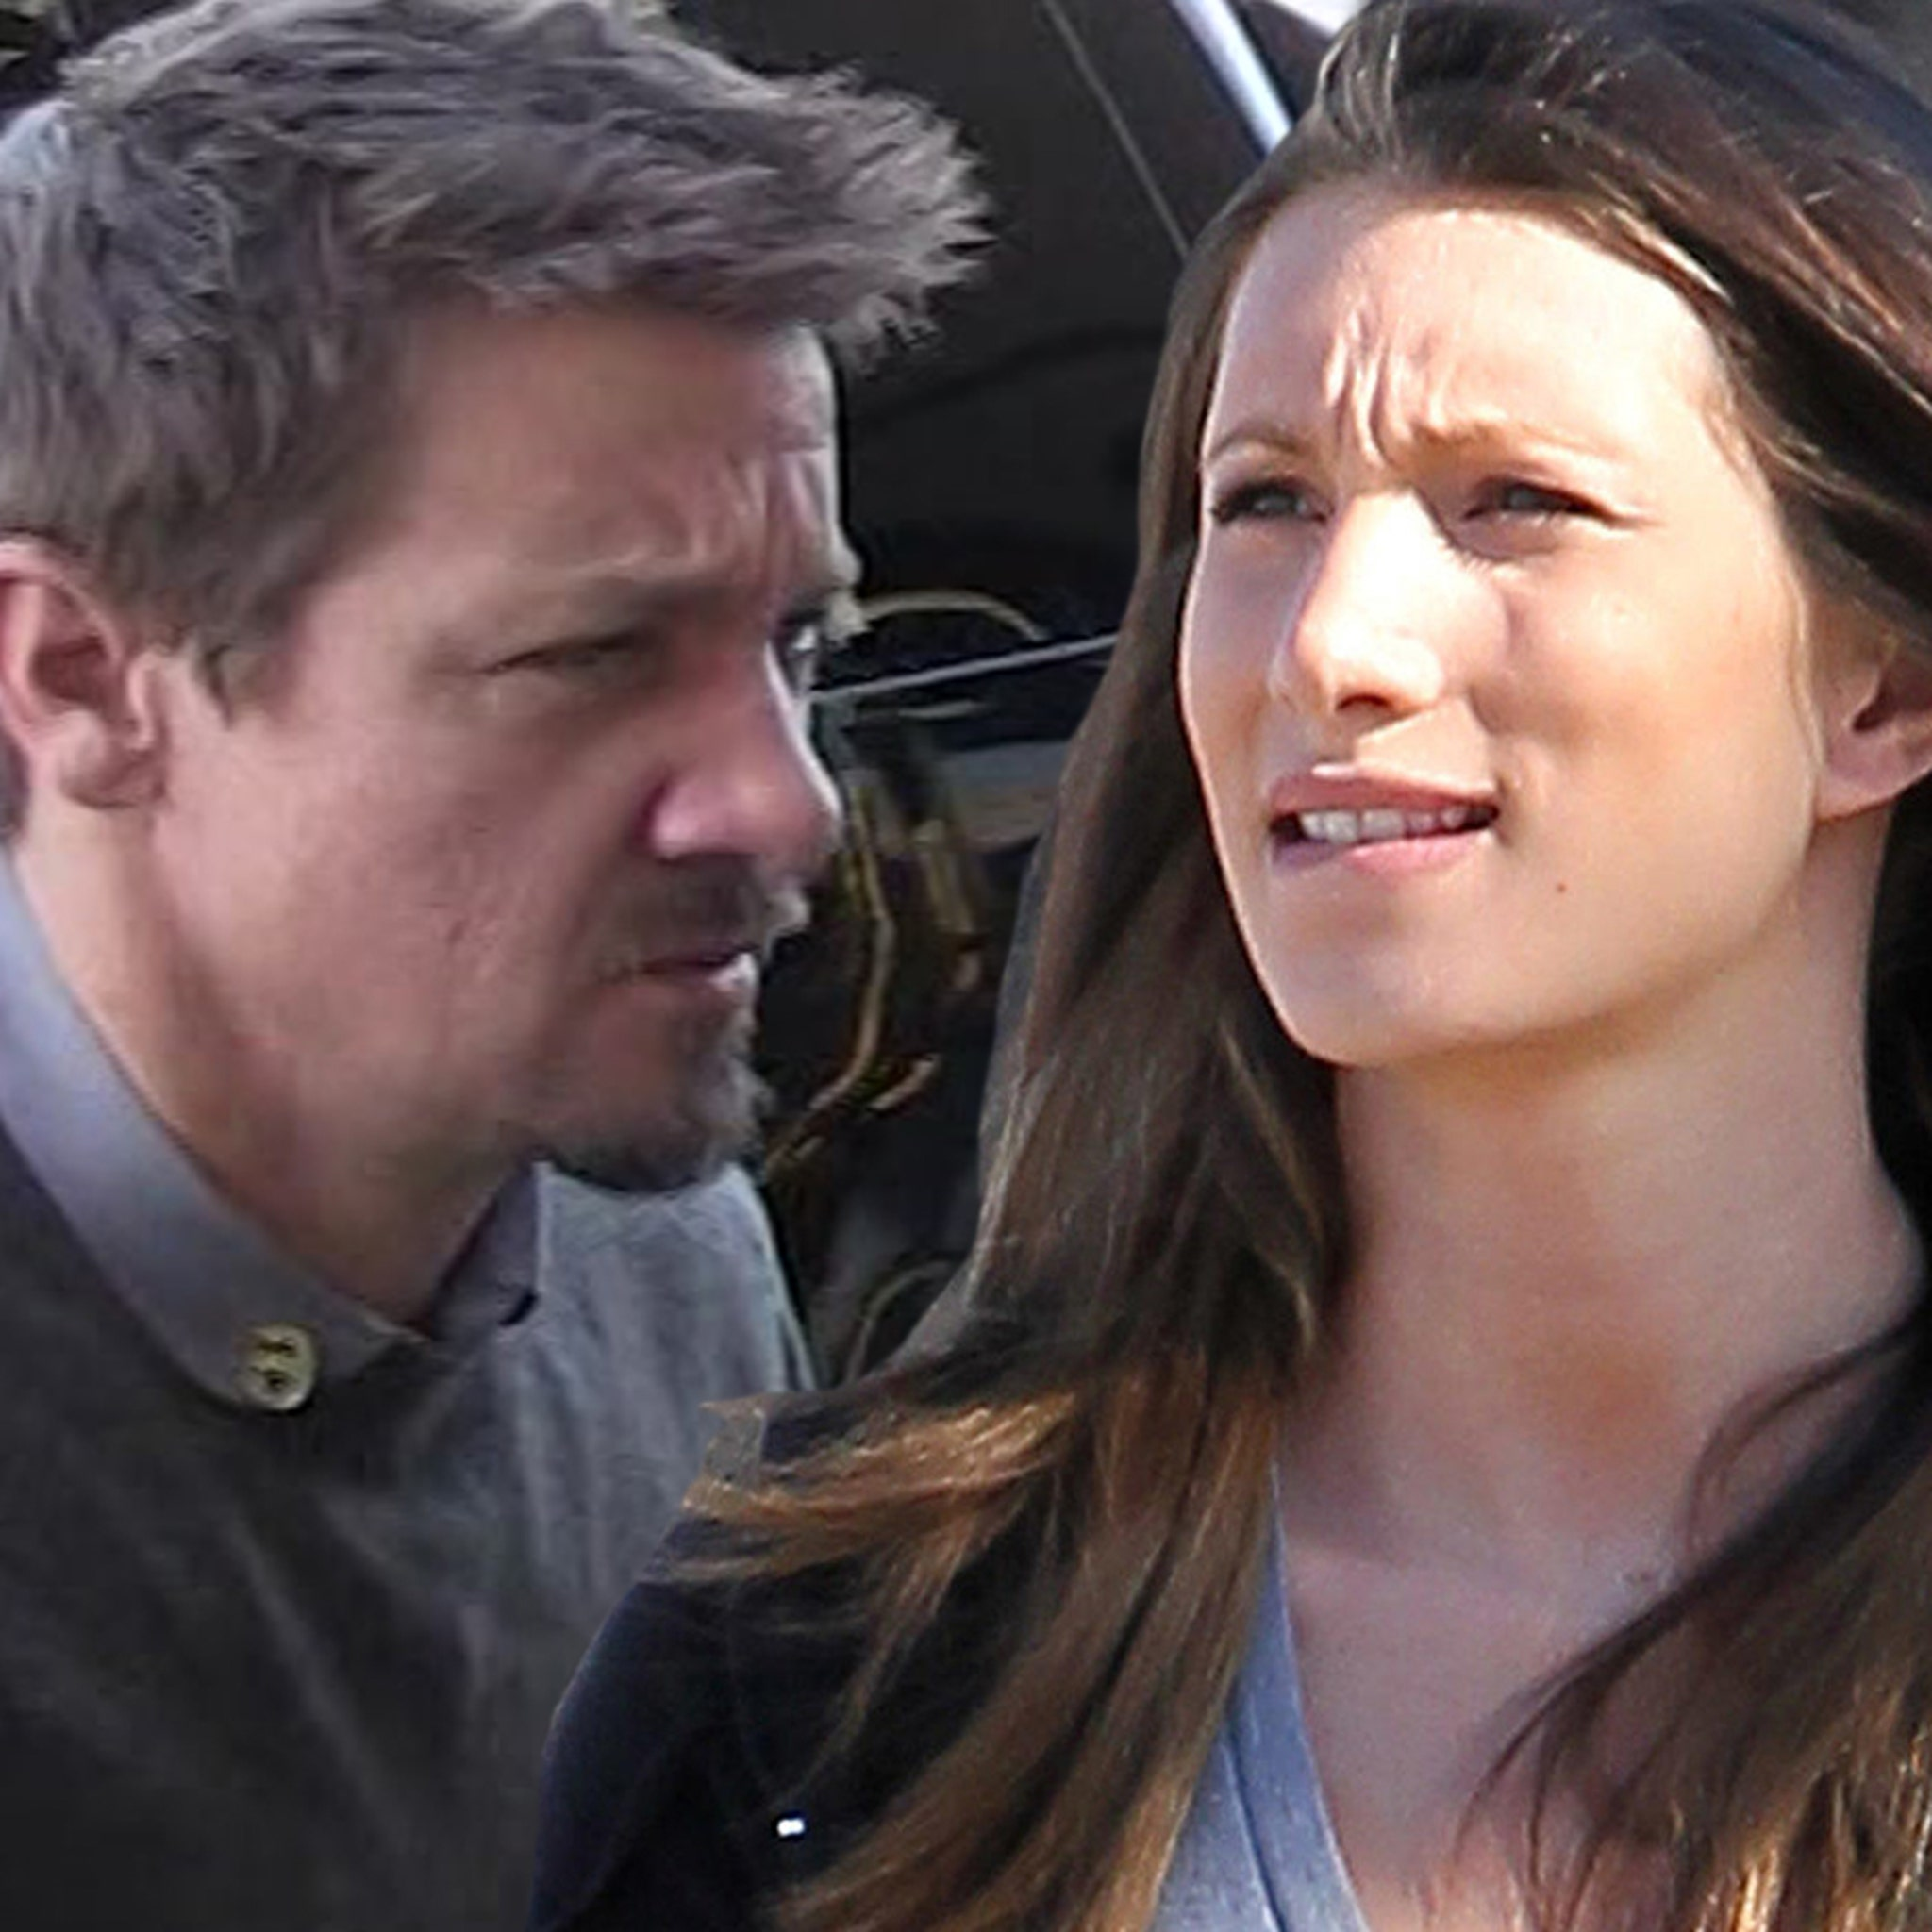 Jeremy Renner Claims Ex Sent His Nudes to Humiliate Him, is Sex Obsessed